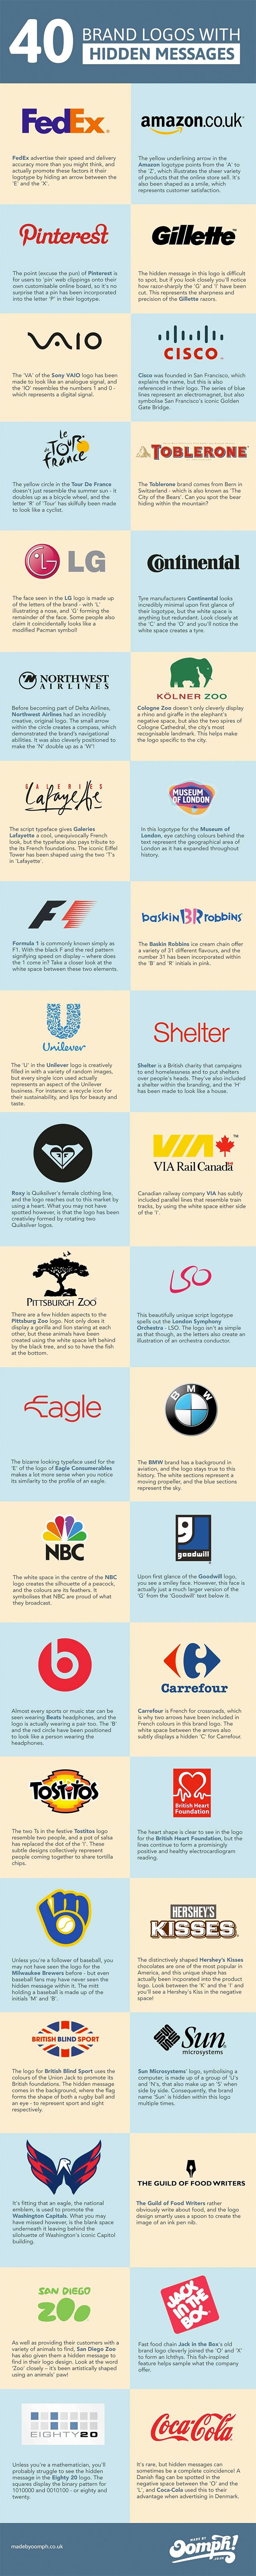 Can You Find the Hidden Images in These 40 Brand Logos? (Infographic)